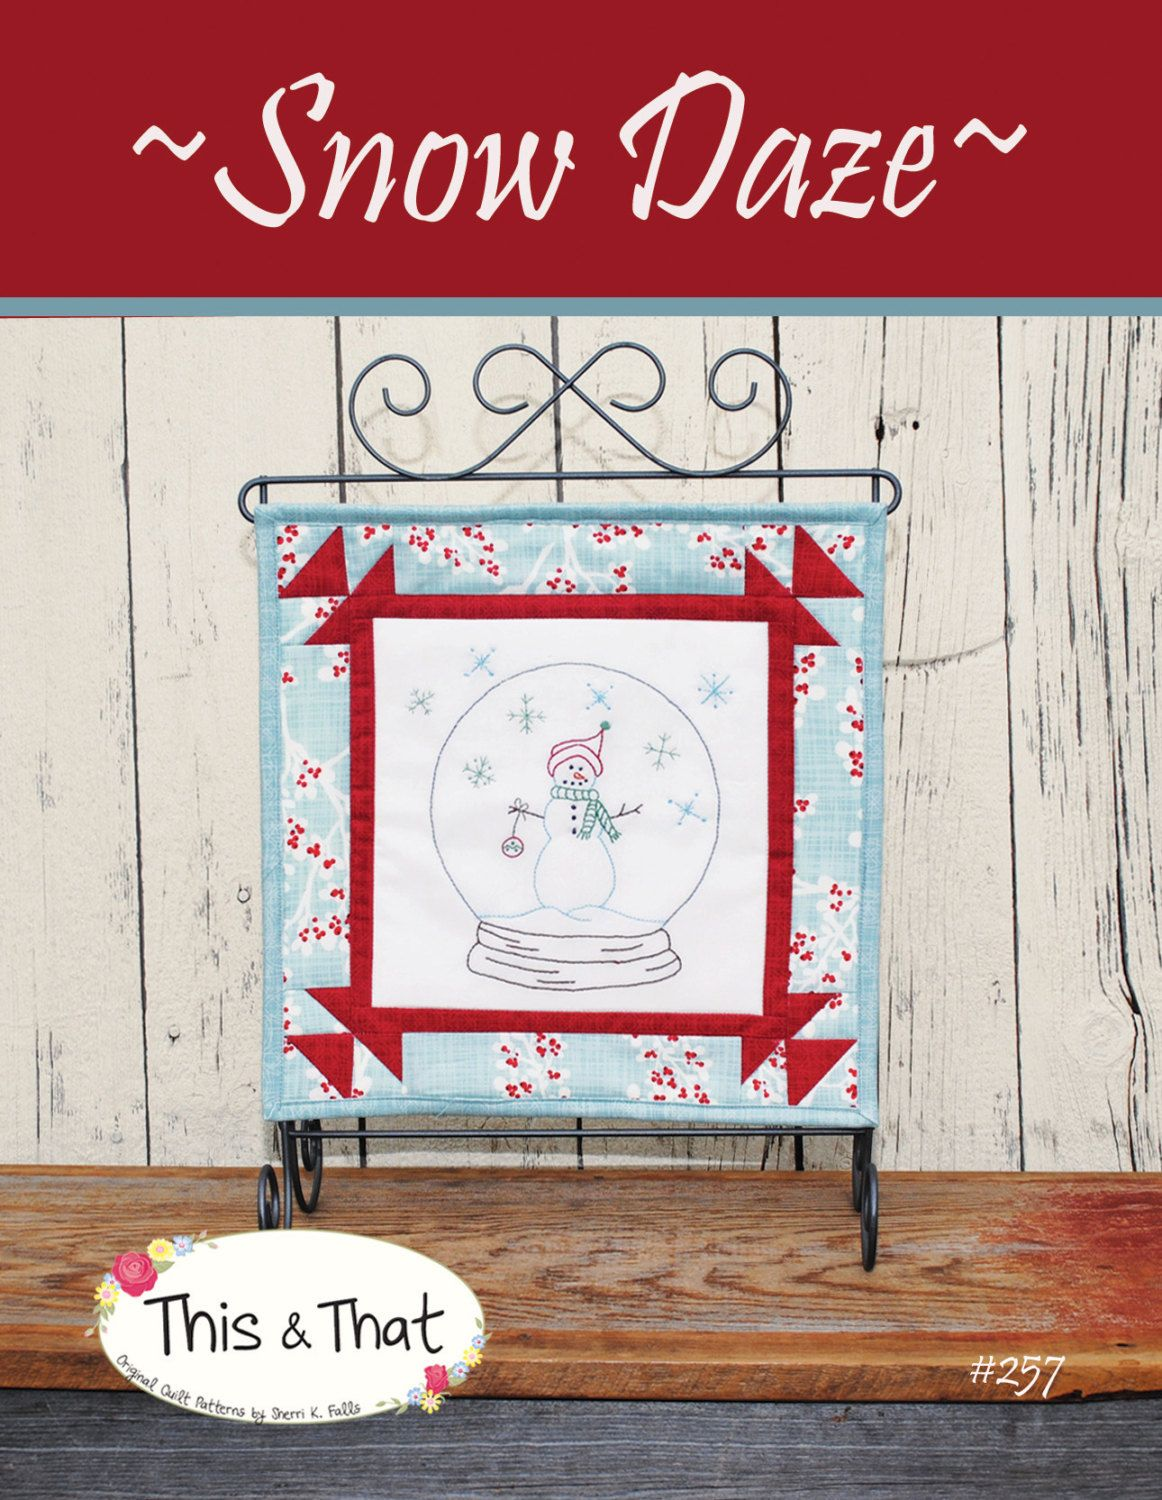 Snow Daze Embroidery Pattern Download